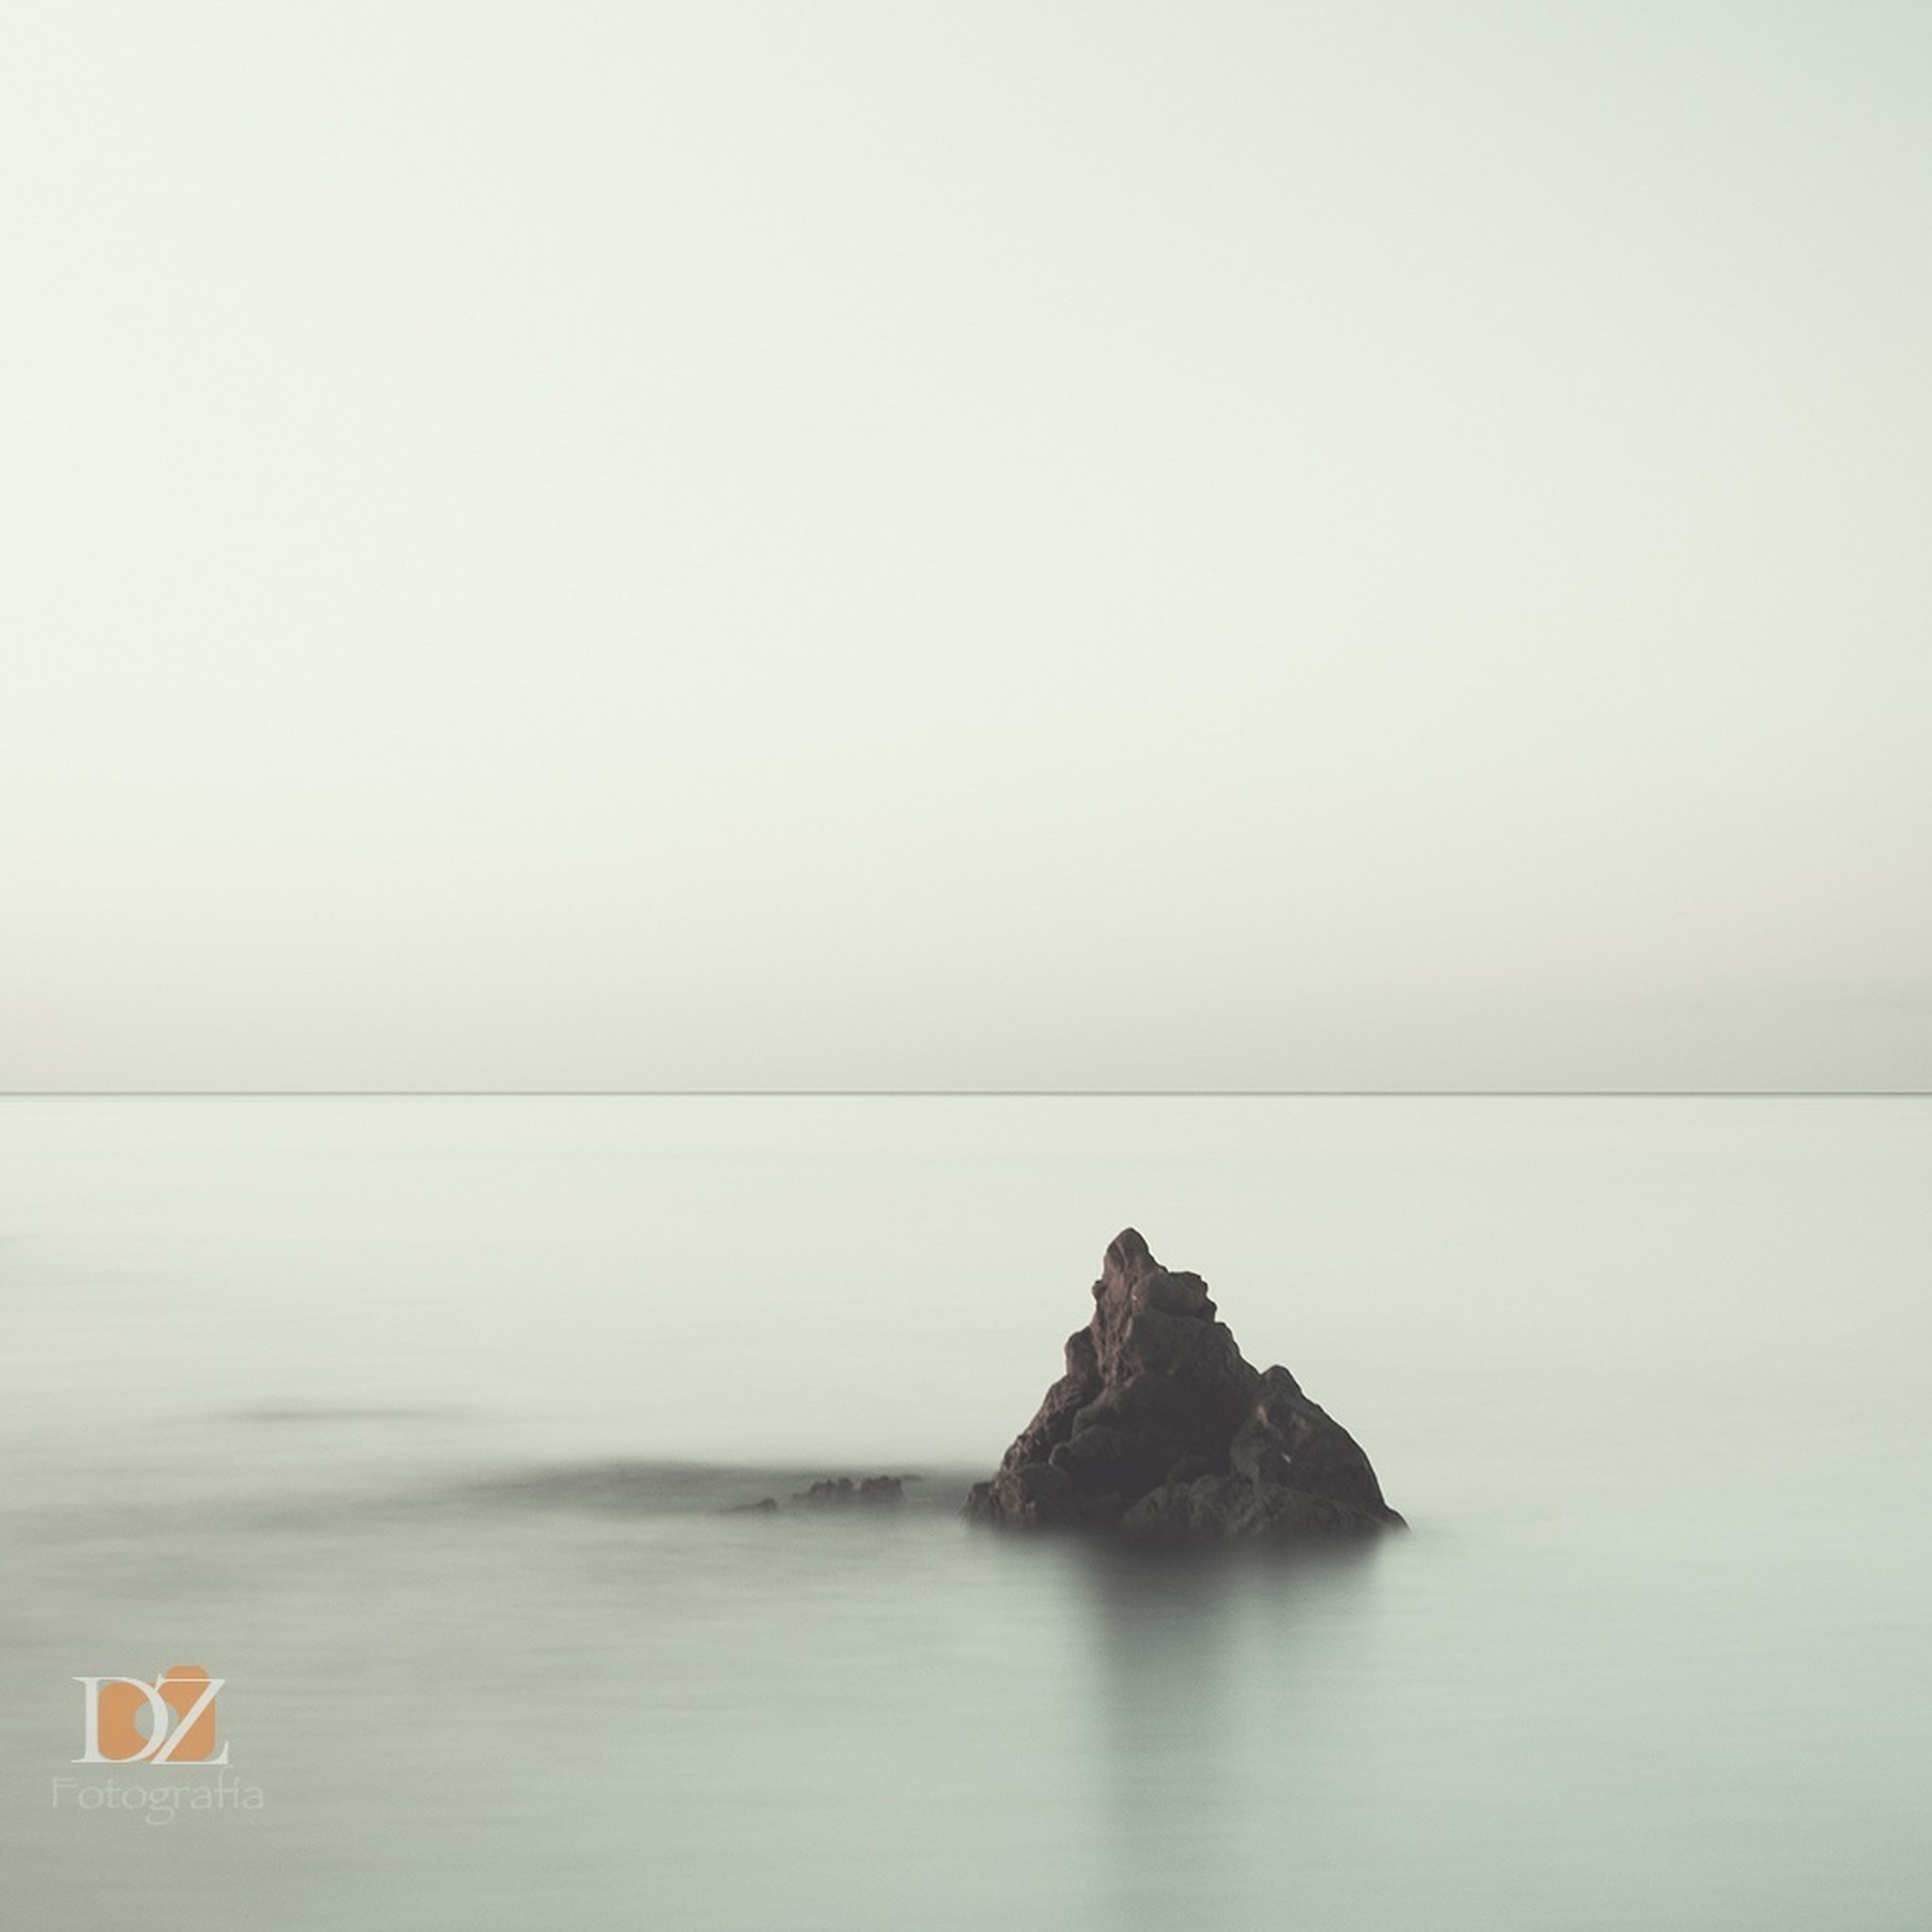 water, sea, copy space, tranquil scene, tranquility, scenics, clear sky, horizon over water, beauty in nature, waterfront, nature, rock - object, idyllic, calm, rock formation, remote, day, rock, non-urban scene, rippled